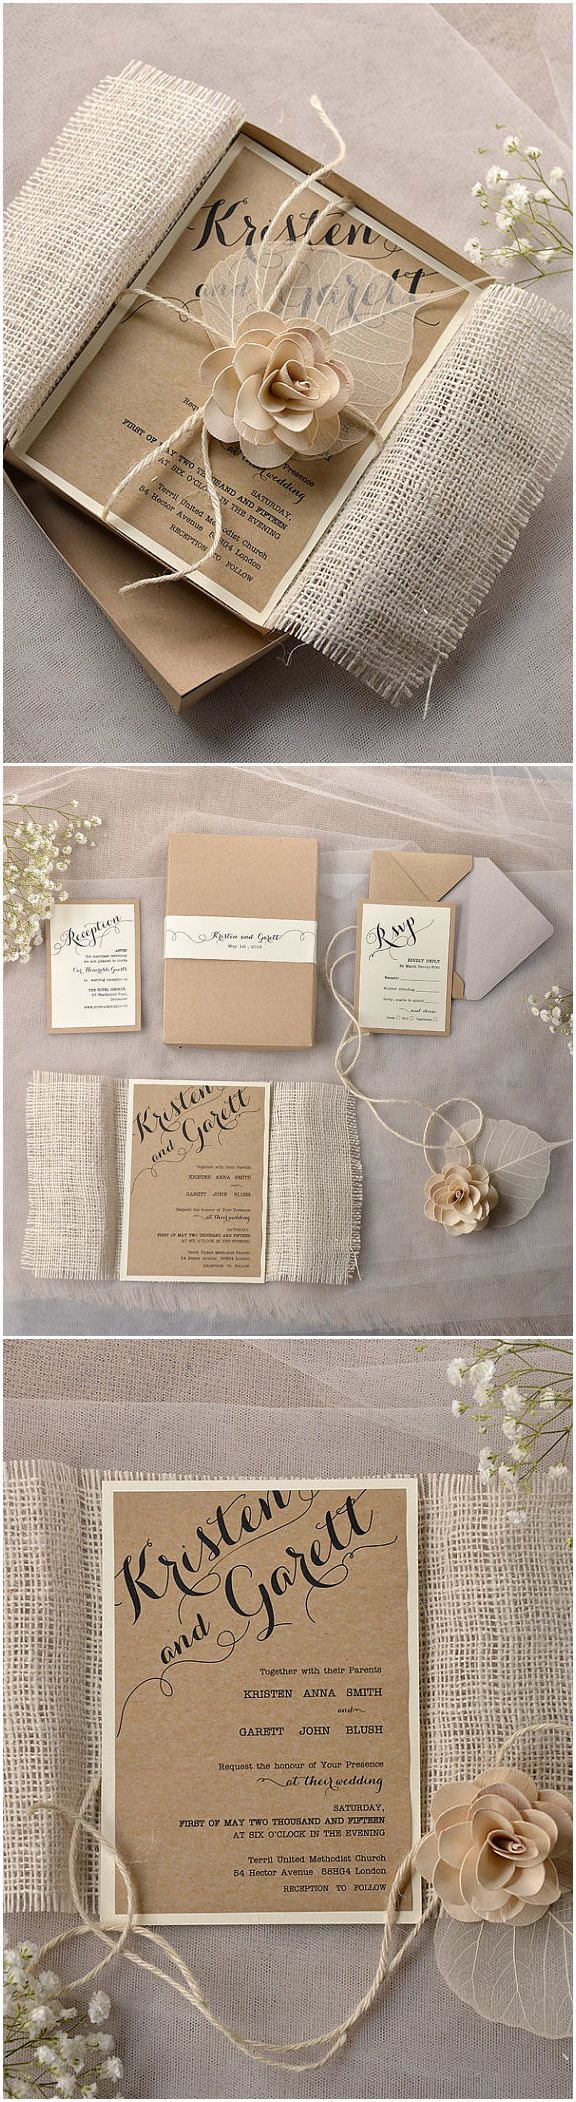 24 Best Rustic Images On Pinterest Invitation Cards Rustic